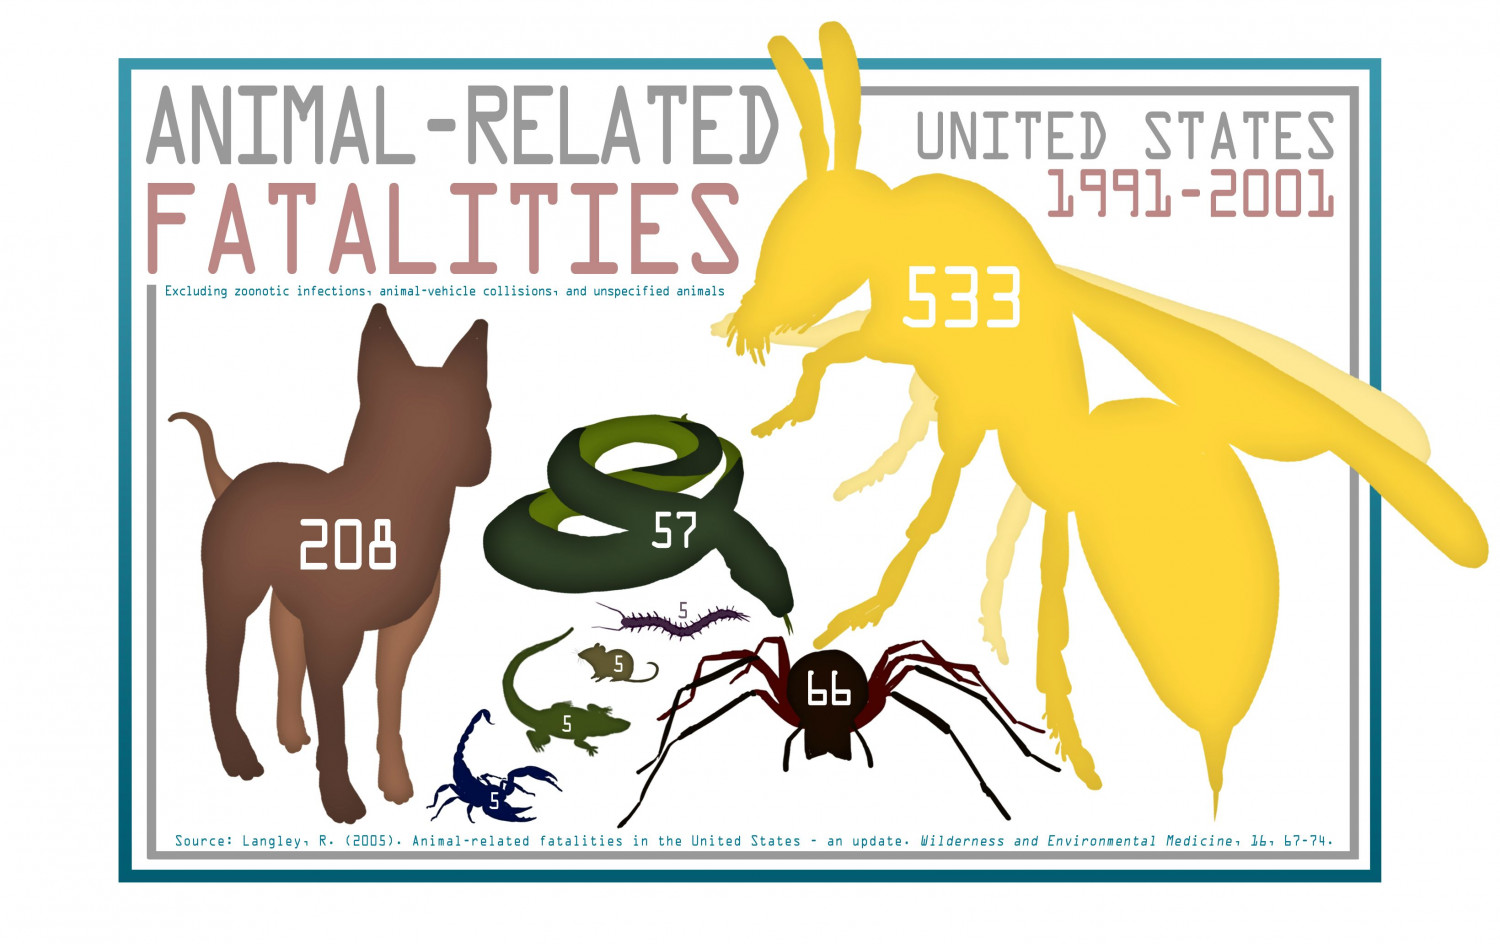 Animal-Related Fatalities in the US from 1991-2001 Infographic